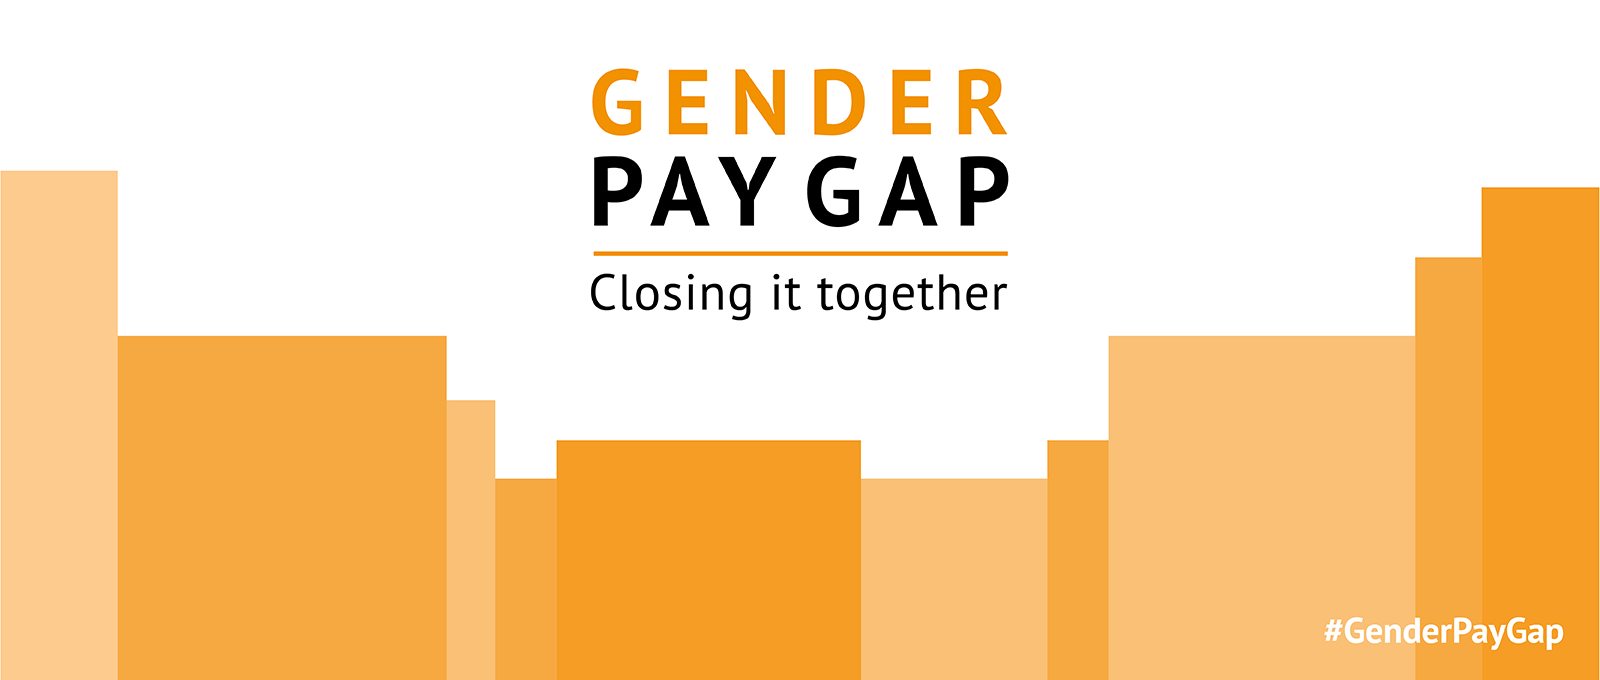 Communicating the Gender Pay Gap Report Results